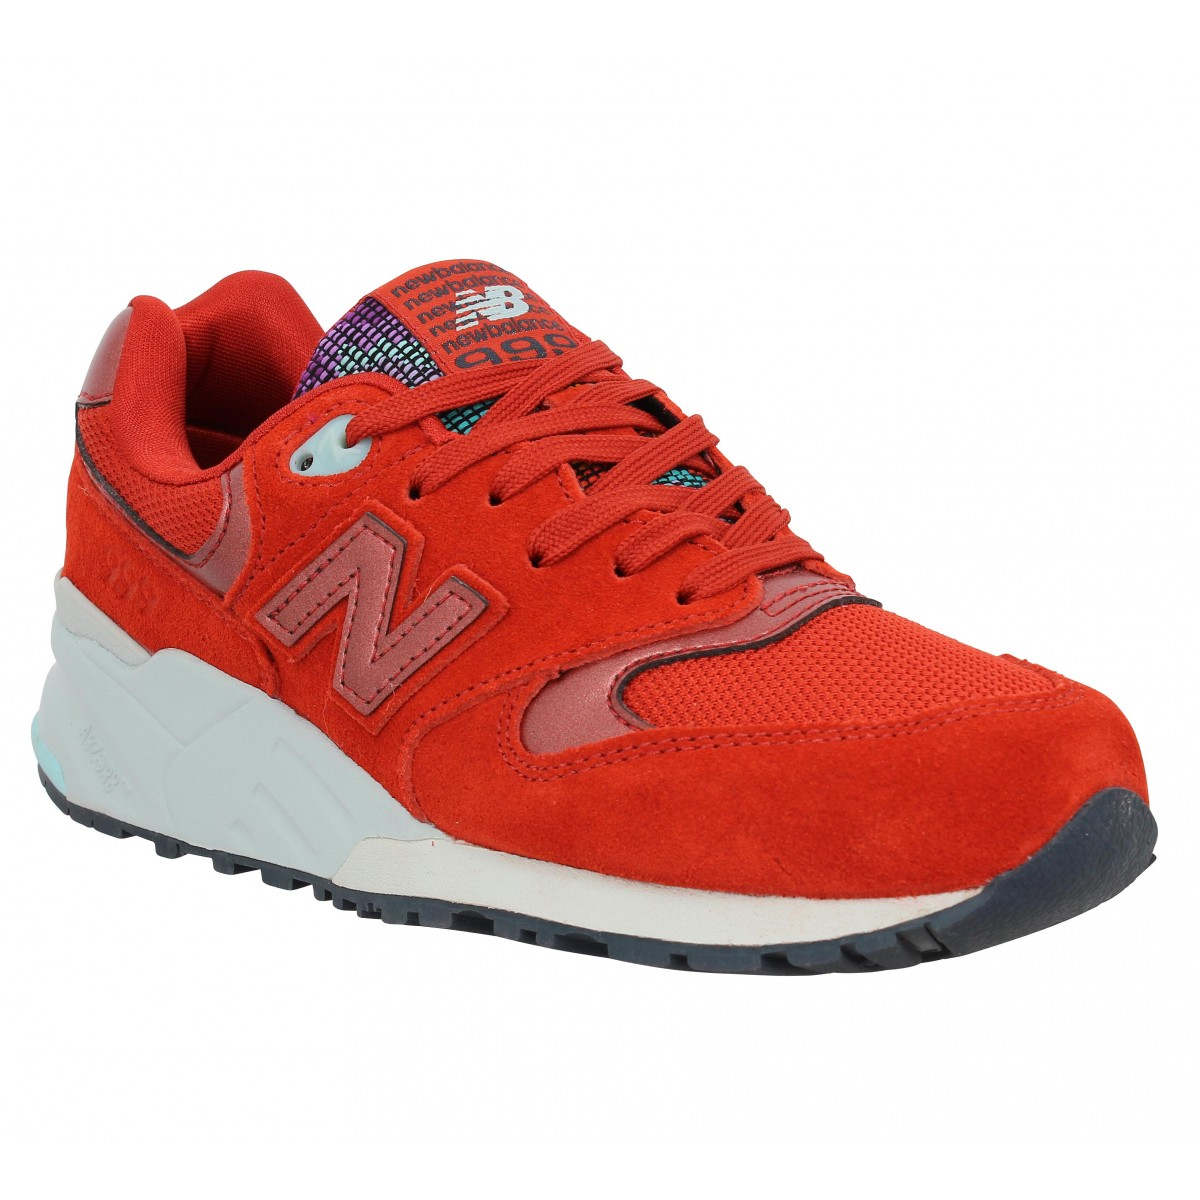 New Balance Marque 999-40-rouge